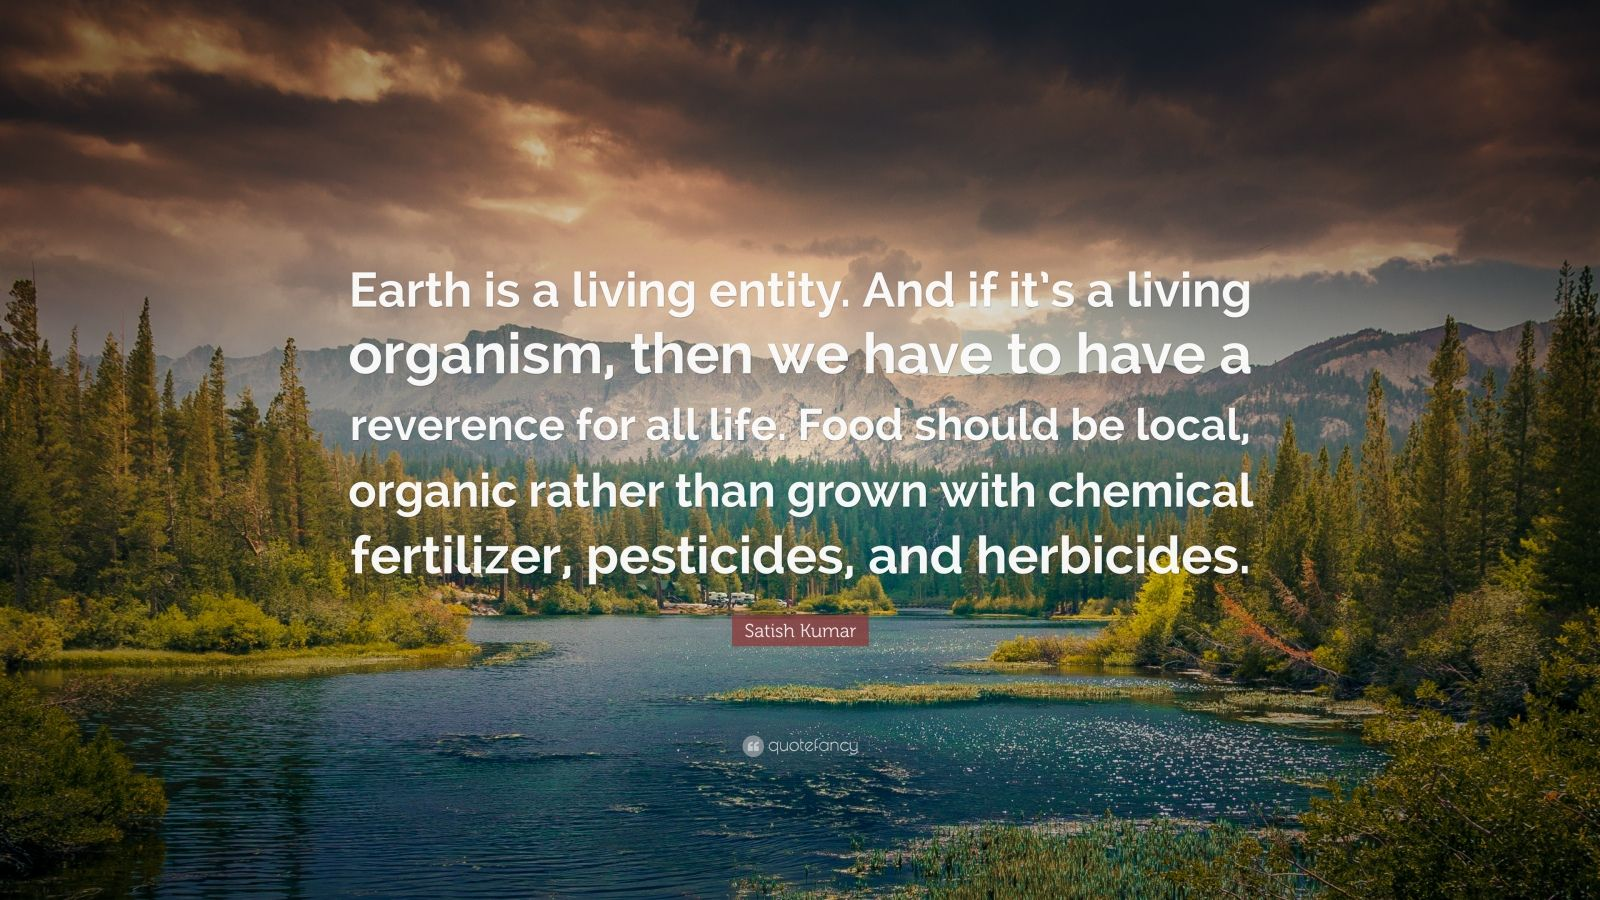 "Satish Kumar Quote: ""Earth is a living entity. And if it's a living organism, then we have to have a reverence for all life. Food should be local, organic rather than grown with chemical fertilizer, pesticides, and herbicides."""